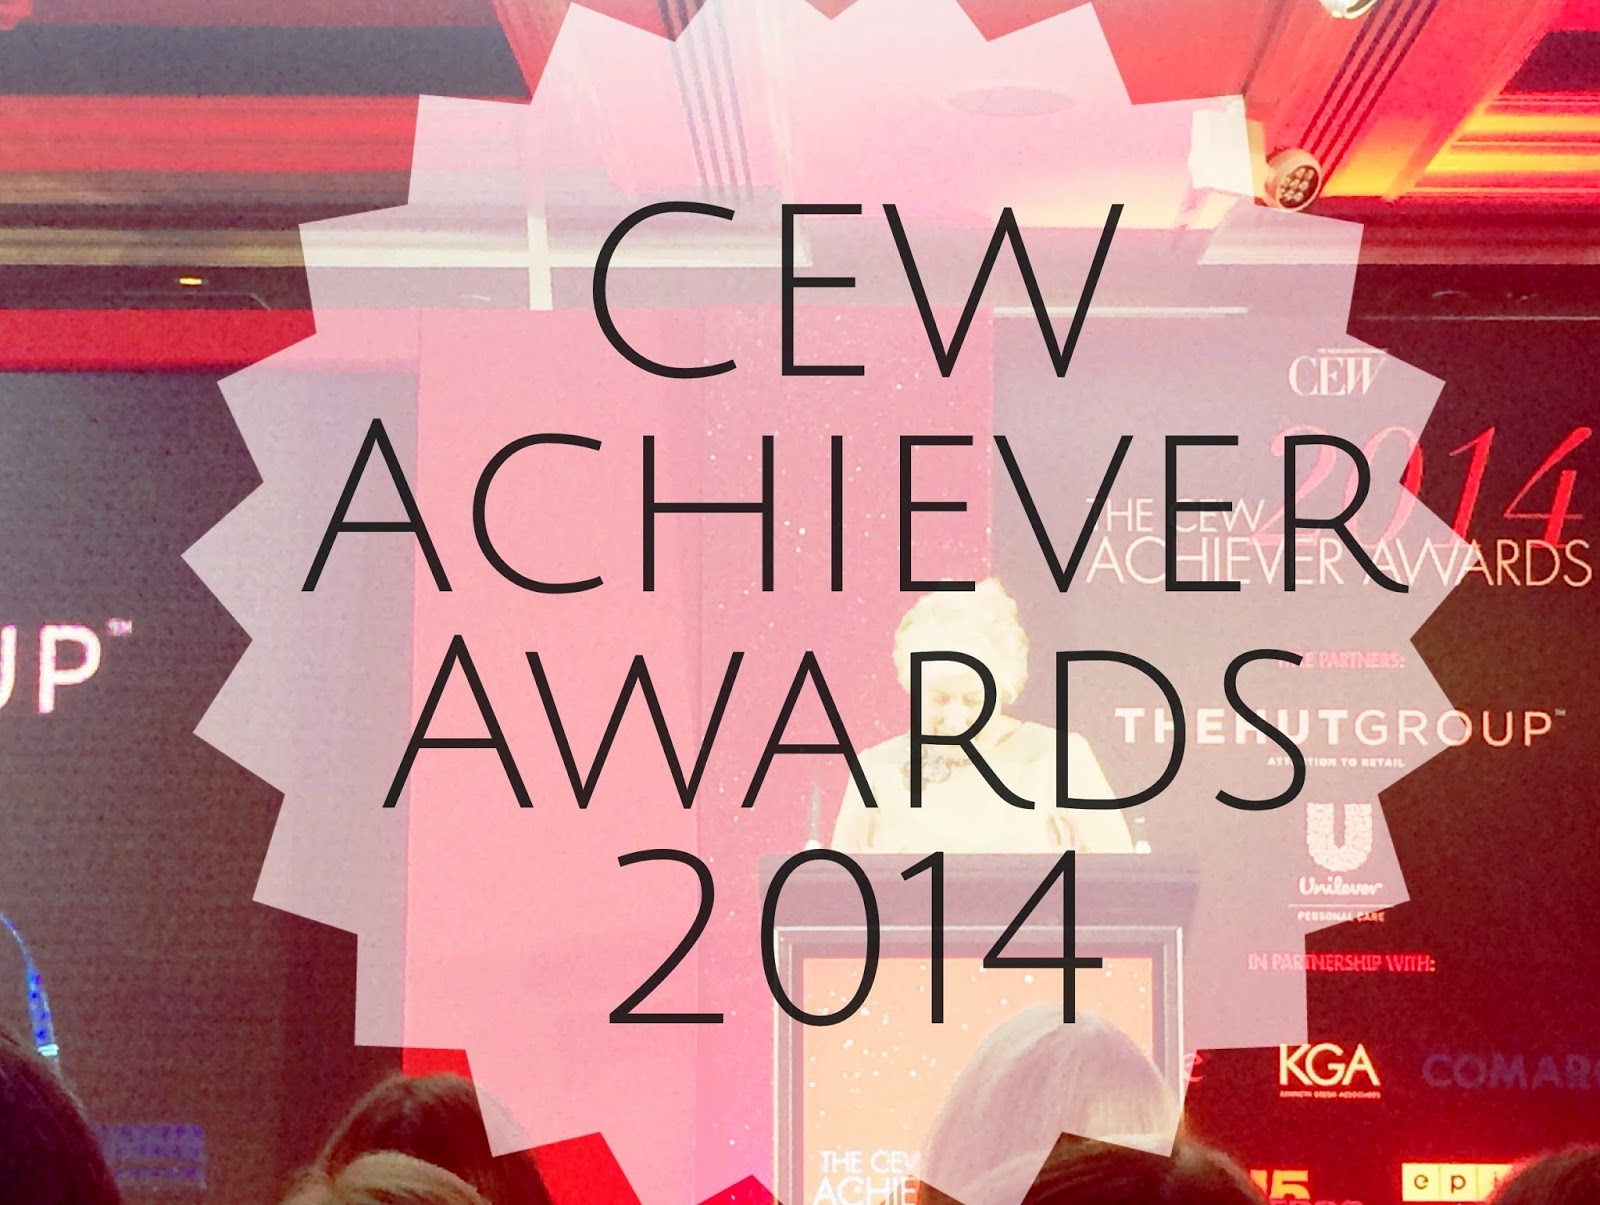 CEW Achiever Awards 2014 - The Beauty Oscars